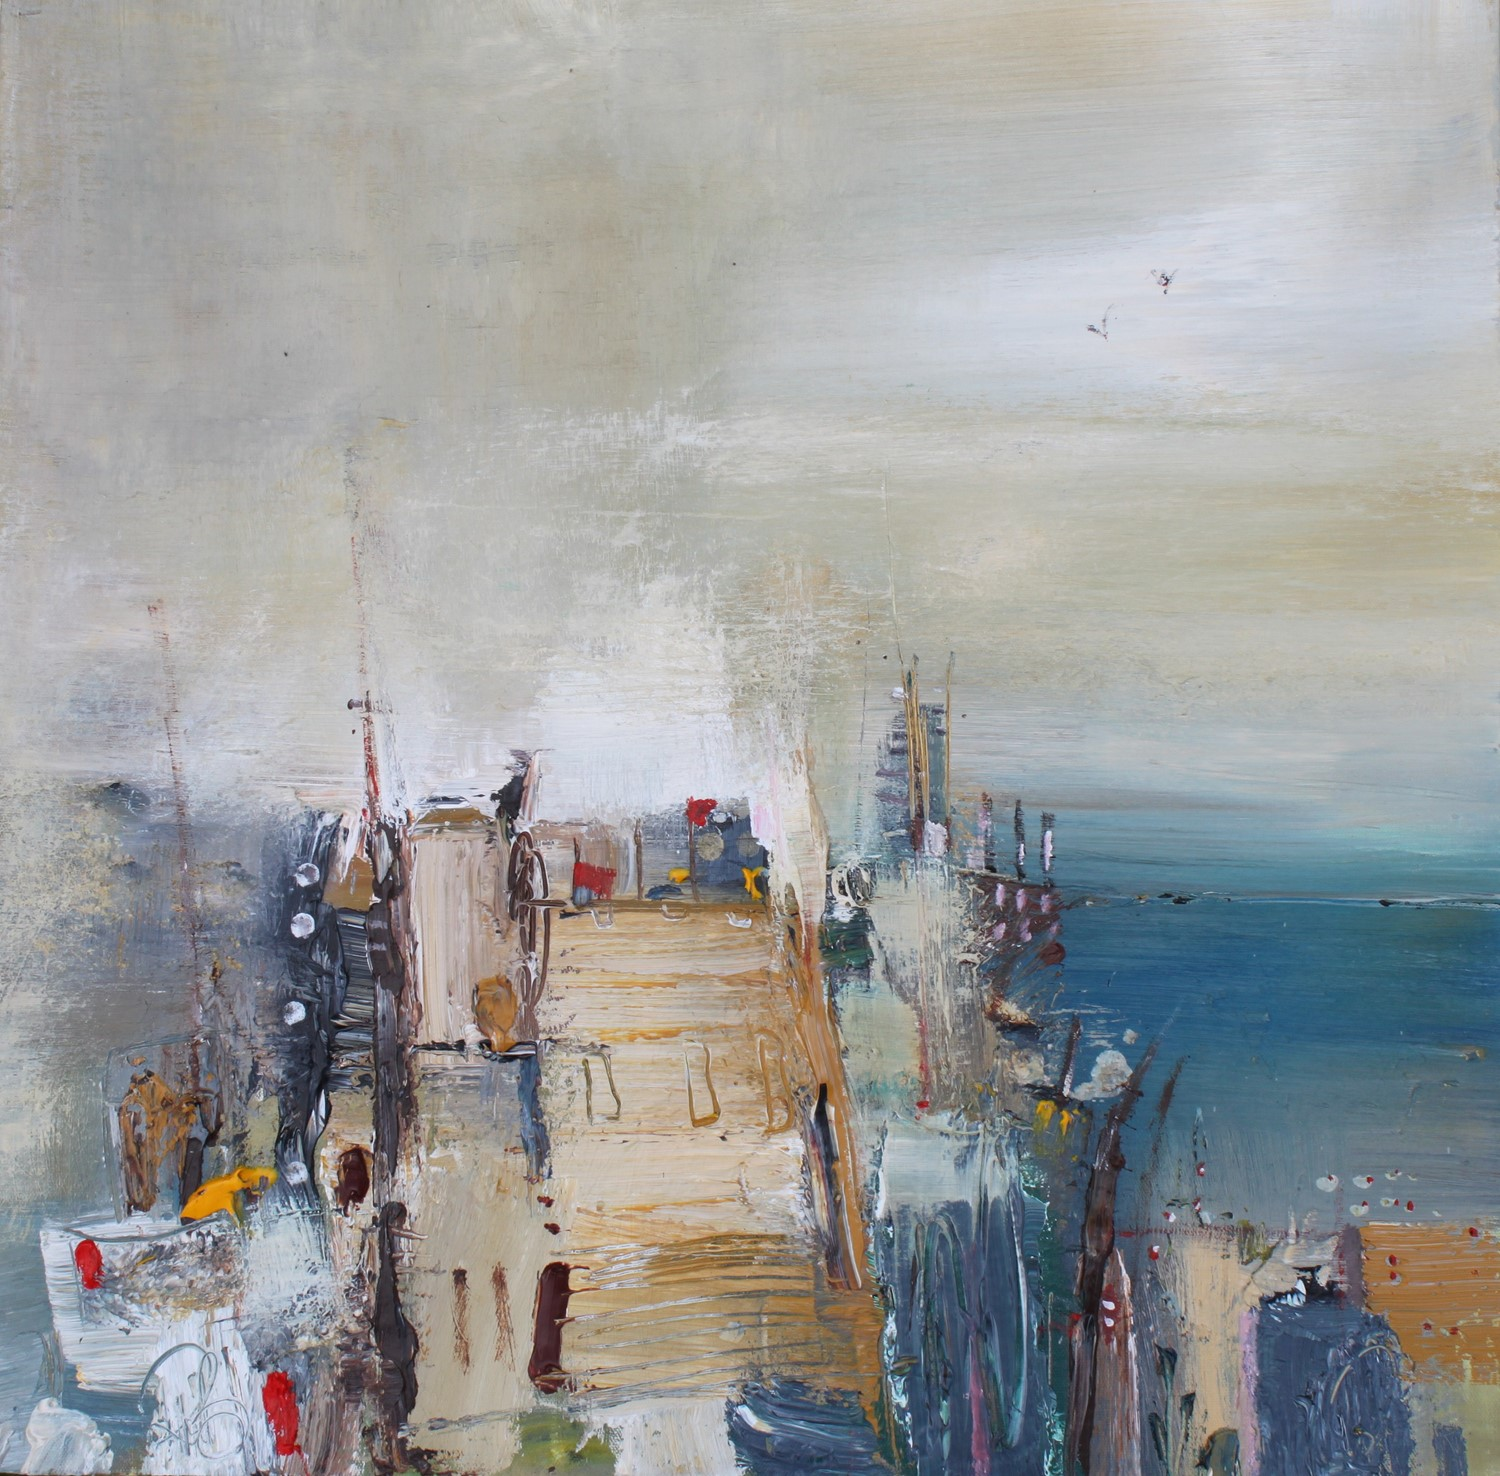 'Coastal Castle' by artist Rosanne Barr